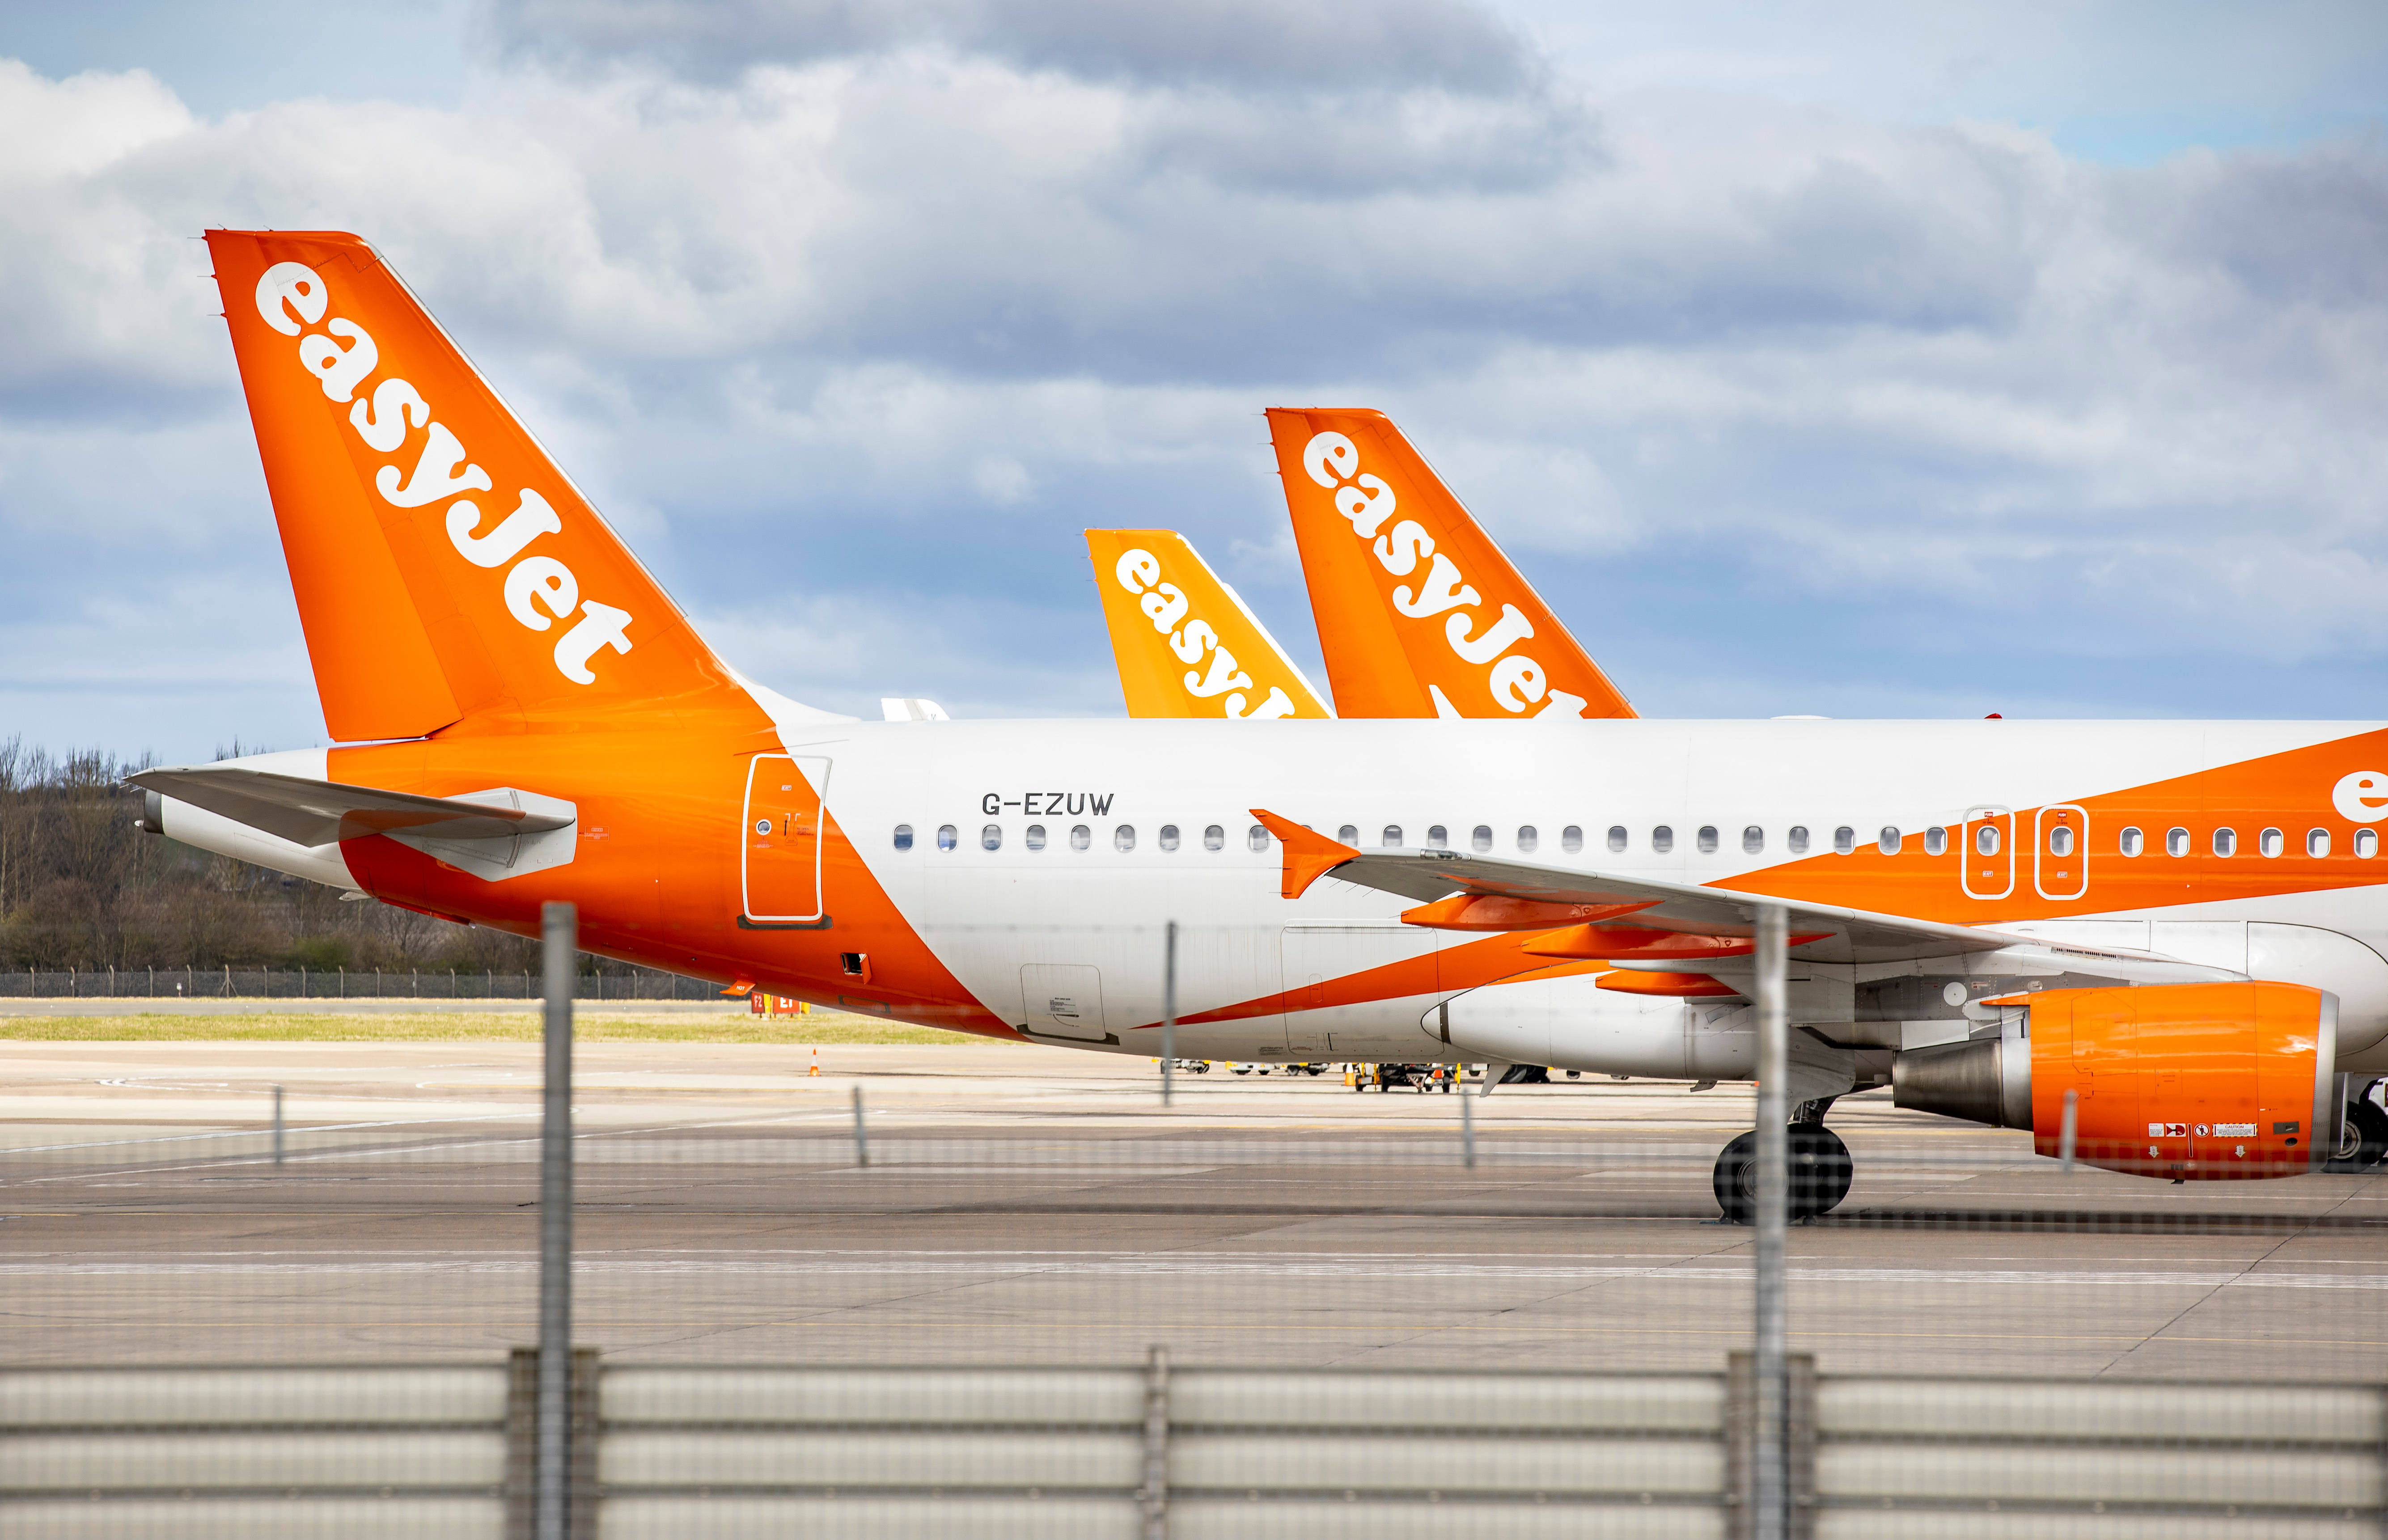 A total of 51 reports have been received by Action Fraud in relation to the EasyJet breach